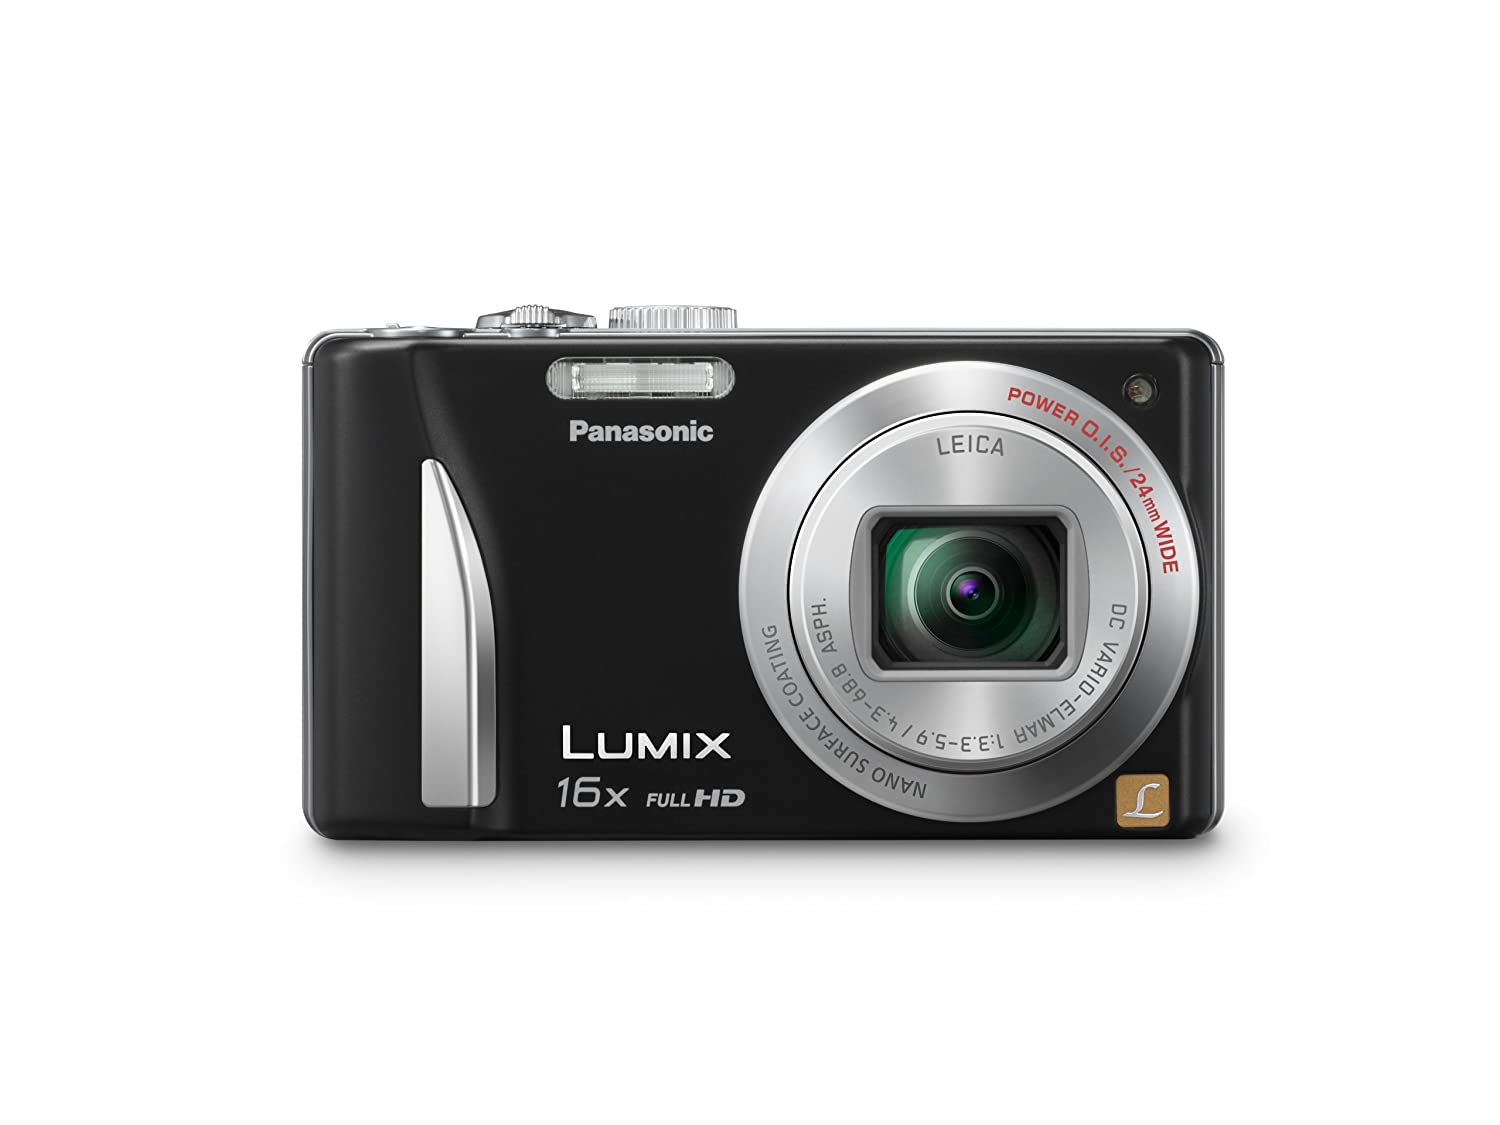 Panasonic LUMIX DMC-ZS15 12.1 MP High Sensitivity MOS Digital Camera with 16x Optical Zoom ($149.00)